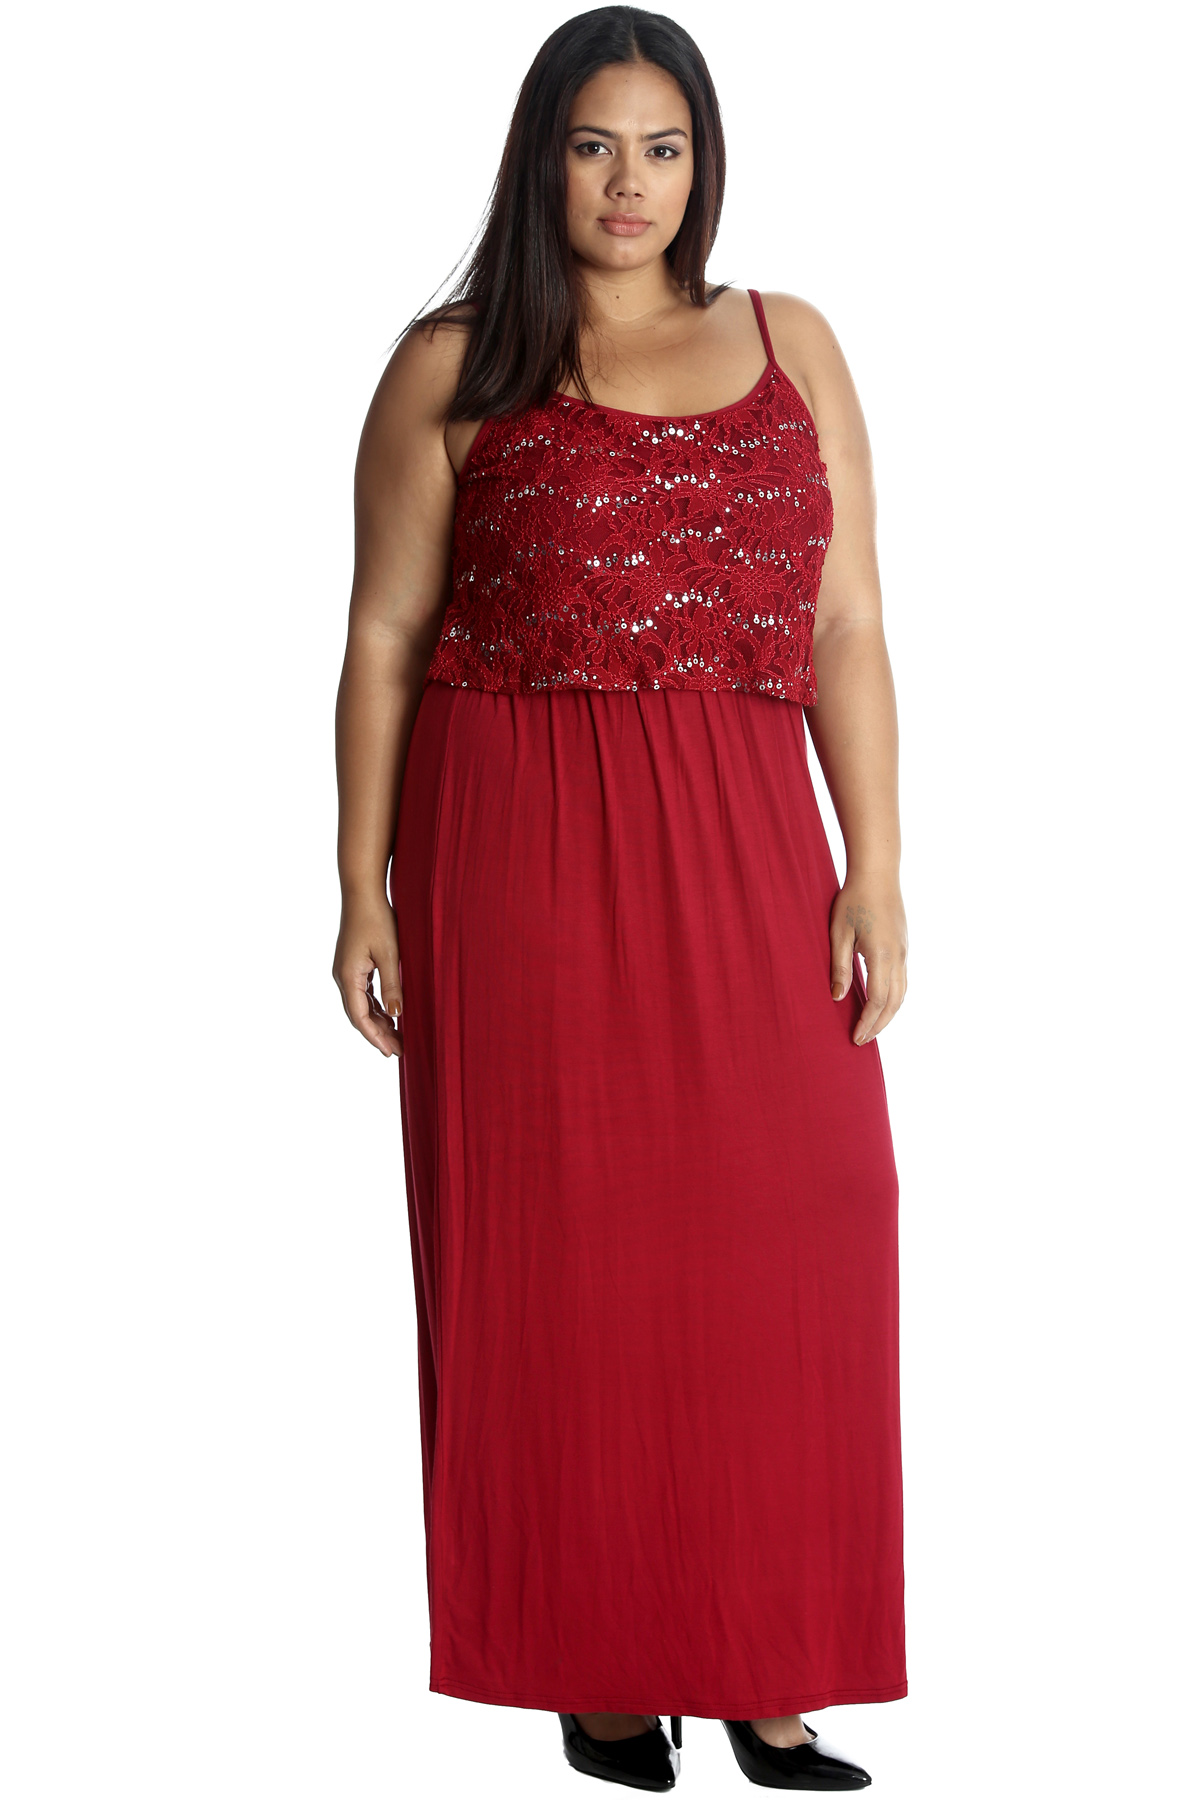 Details about New Womens Plus Size Maxi Dress Ladies Floral Lace Sequin  Tank Top Sleeveless